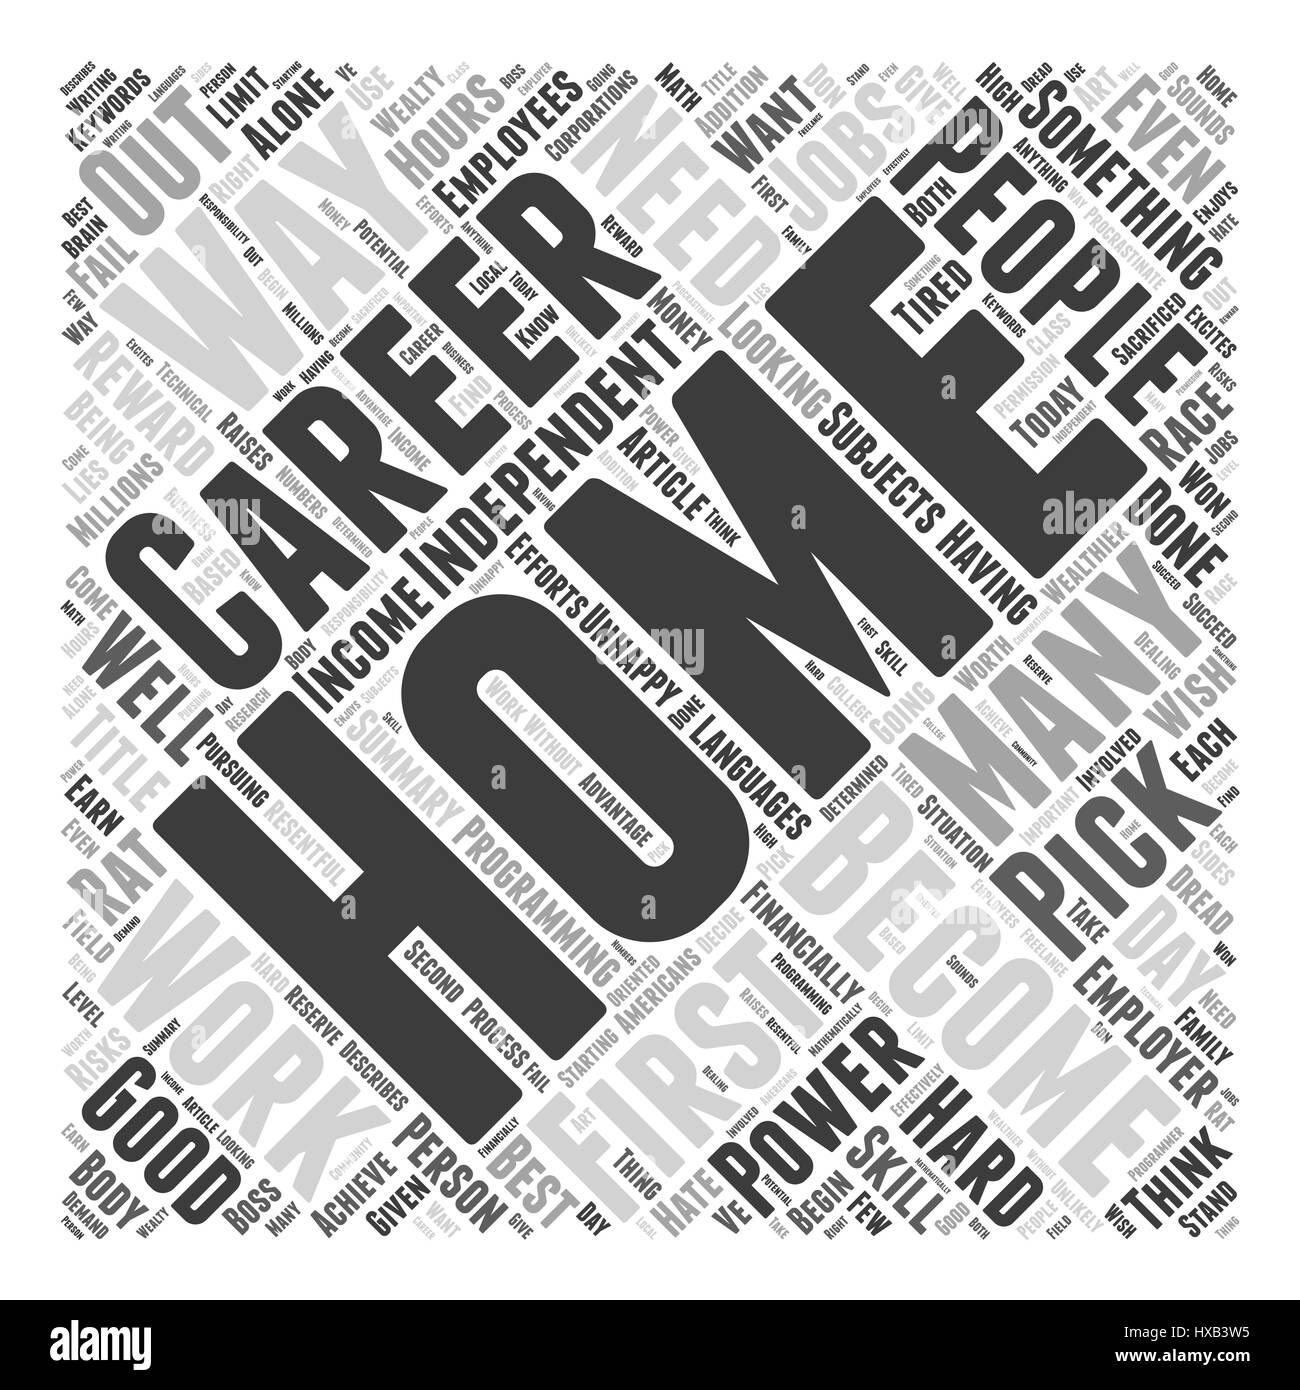 Home Careers Word Cloud Concept - Stock Vector